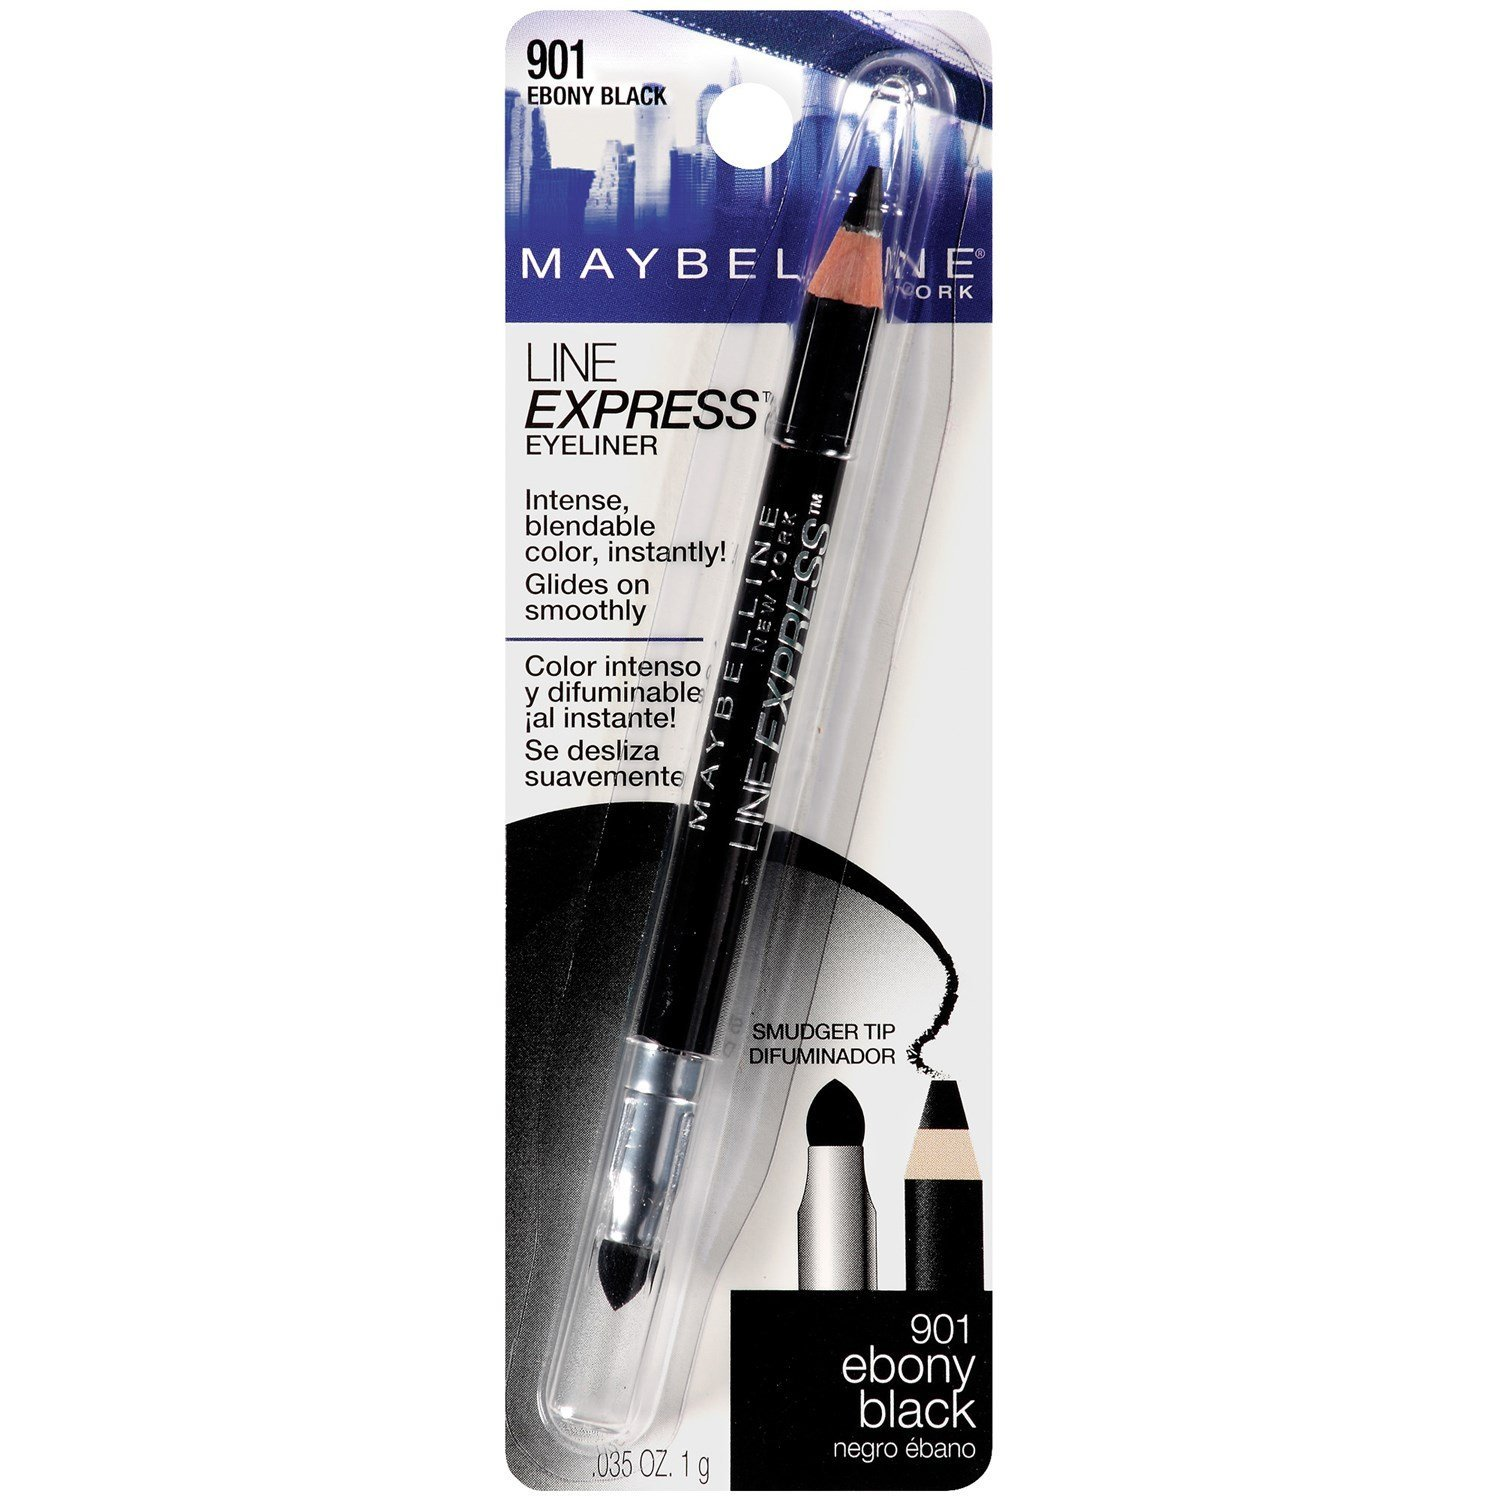 Maybelline Line Express Eyeliner - Ebony Black - 2 Pack, Quality eye liners By Maybelline New York